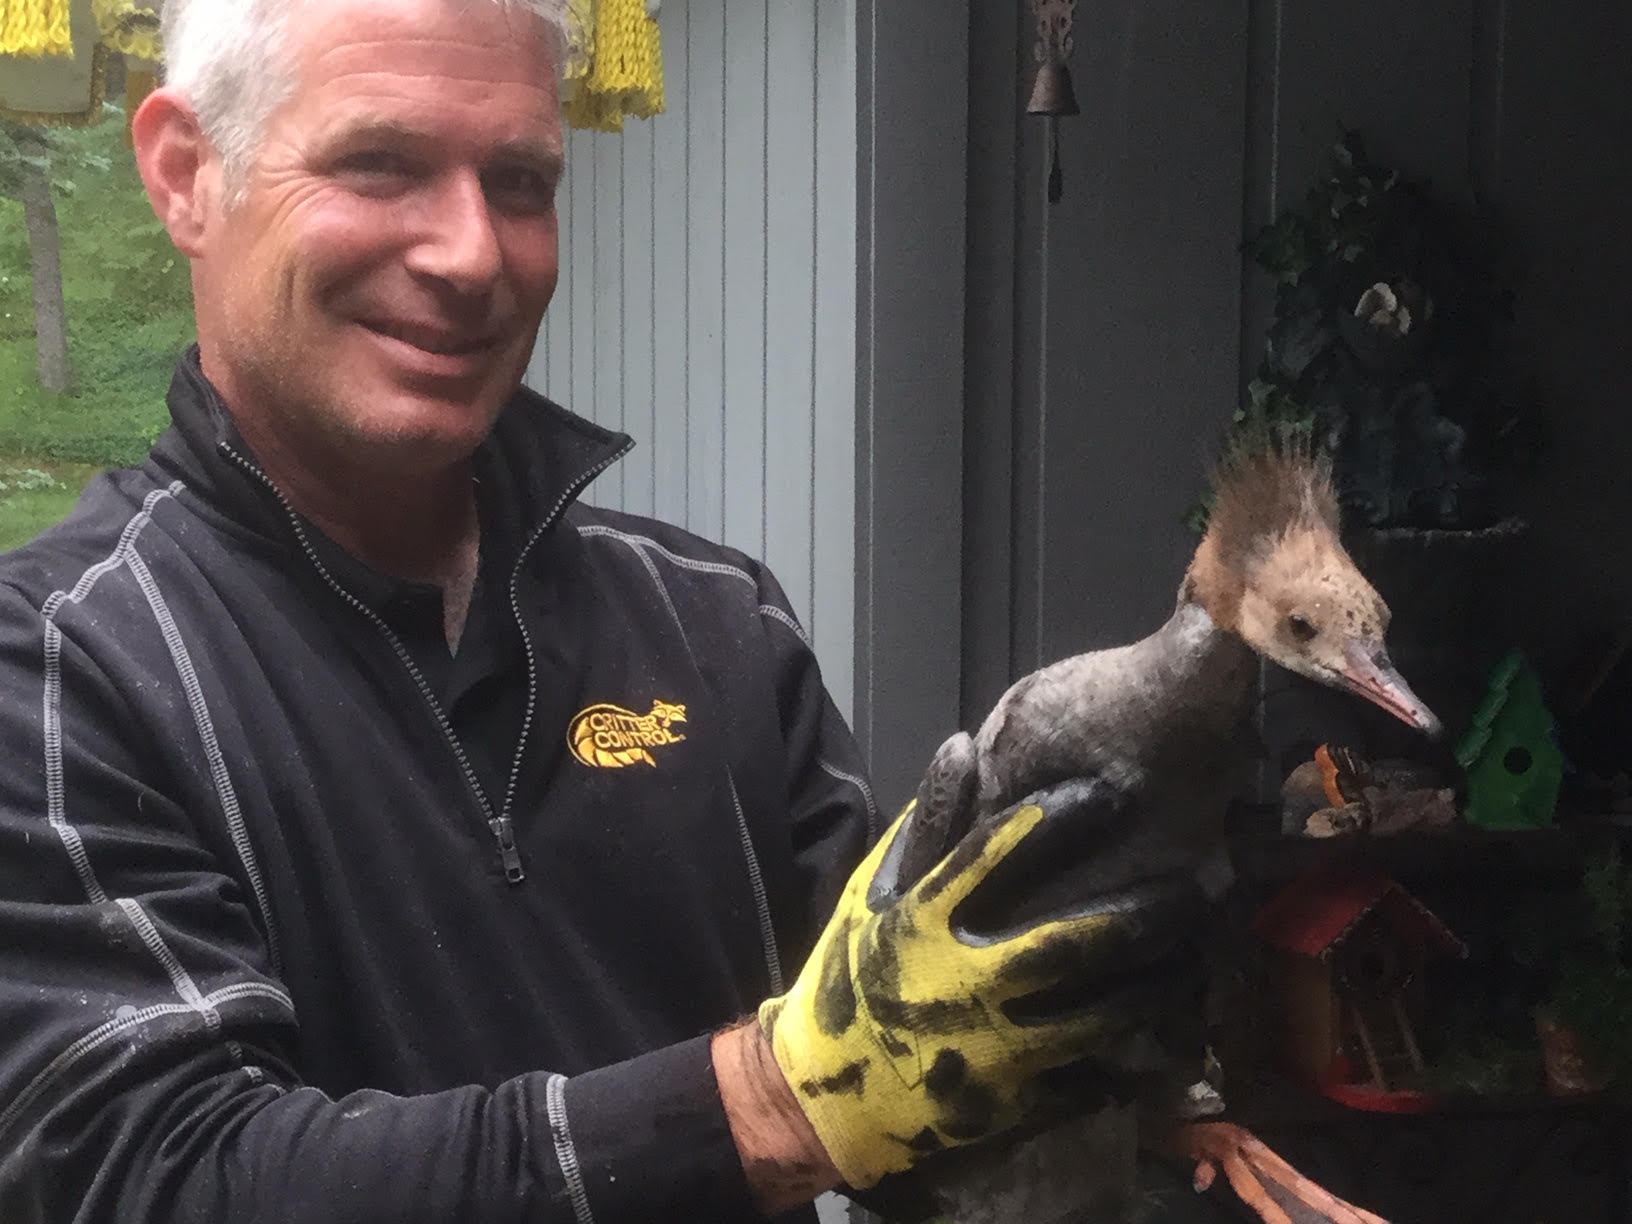 Critter Control technician holding removed wildlife in Milwaukee.